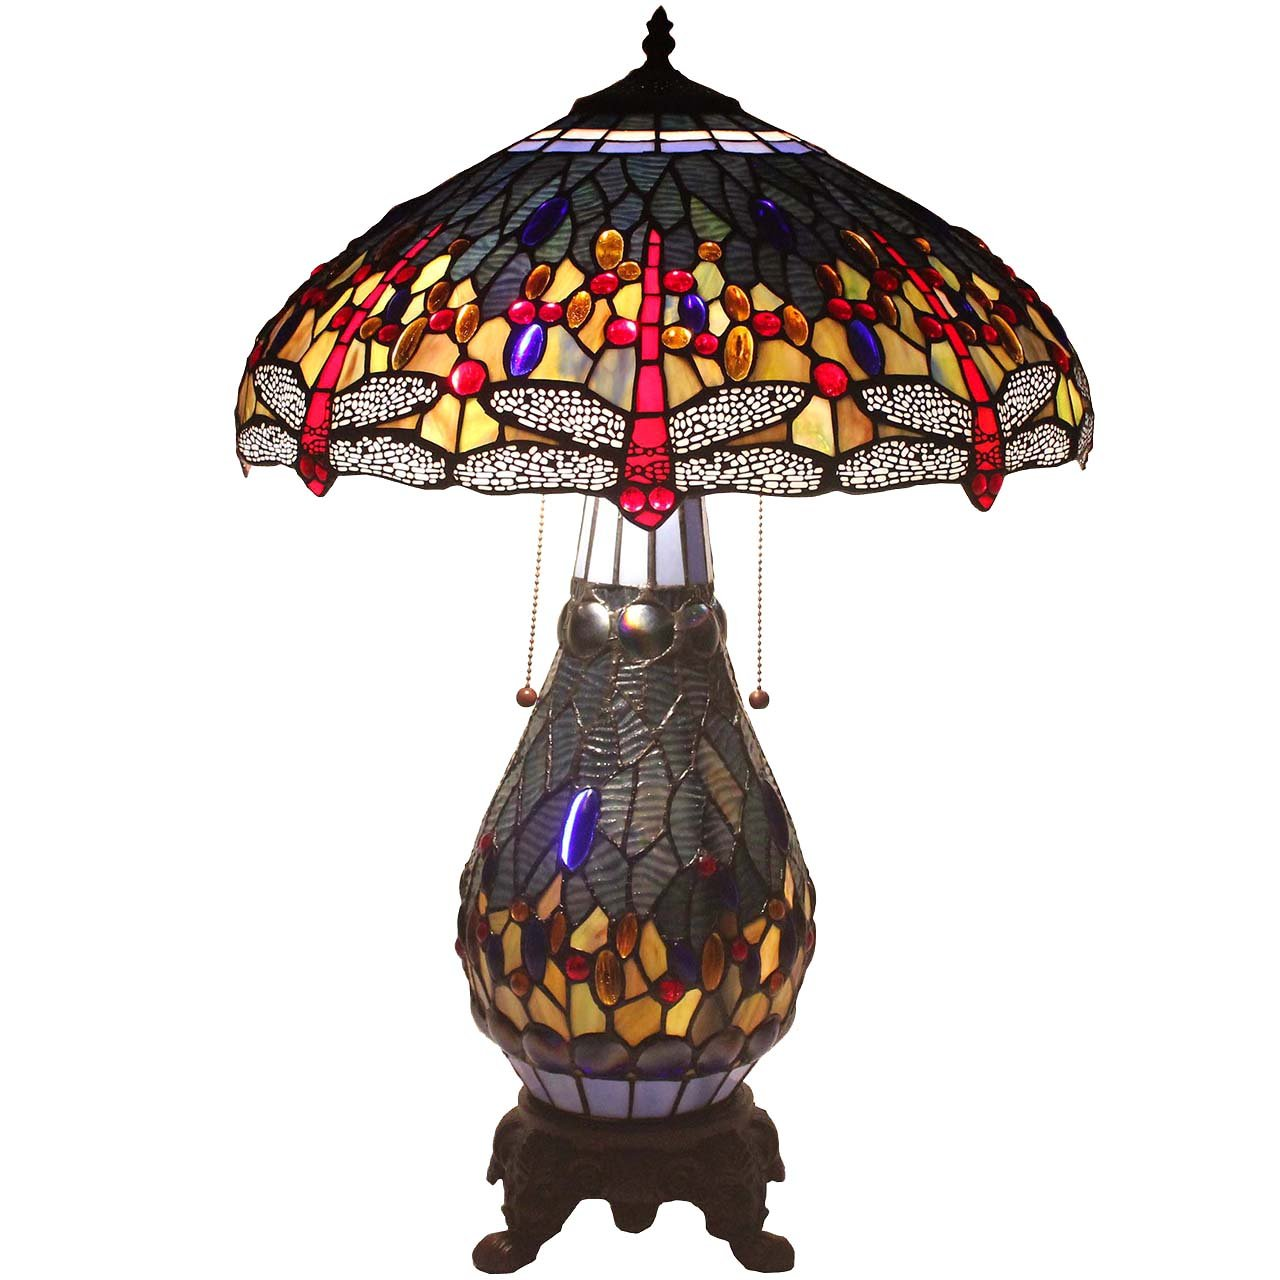 Bieye L11403 26 Inch Dragonfly Tiffany Style Stained Glass Table